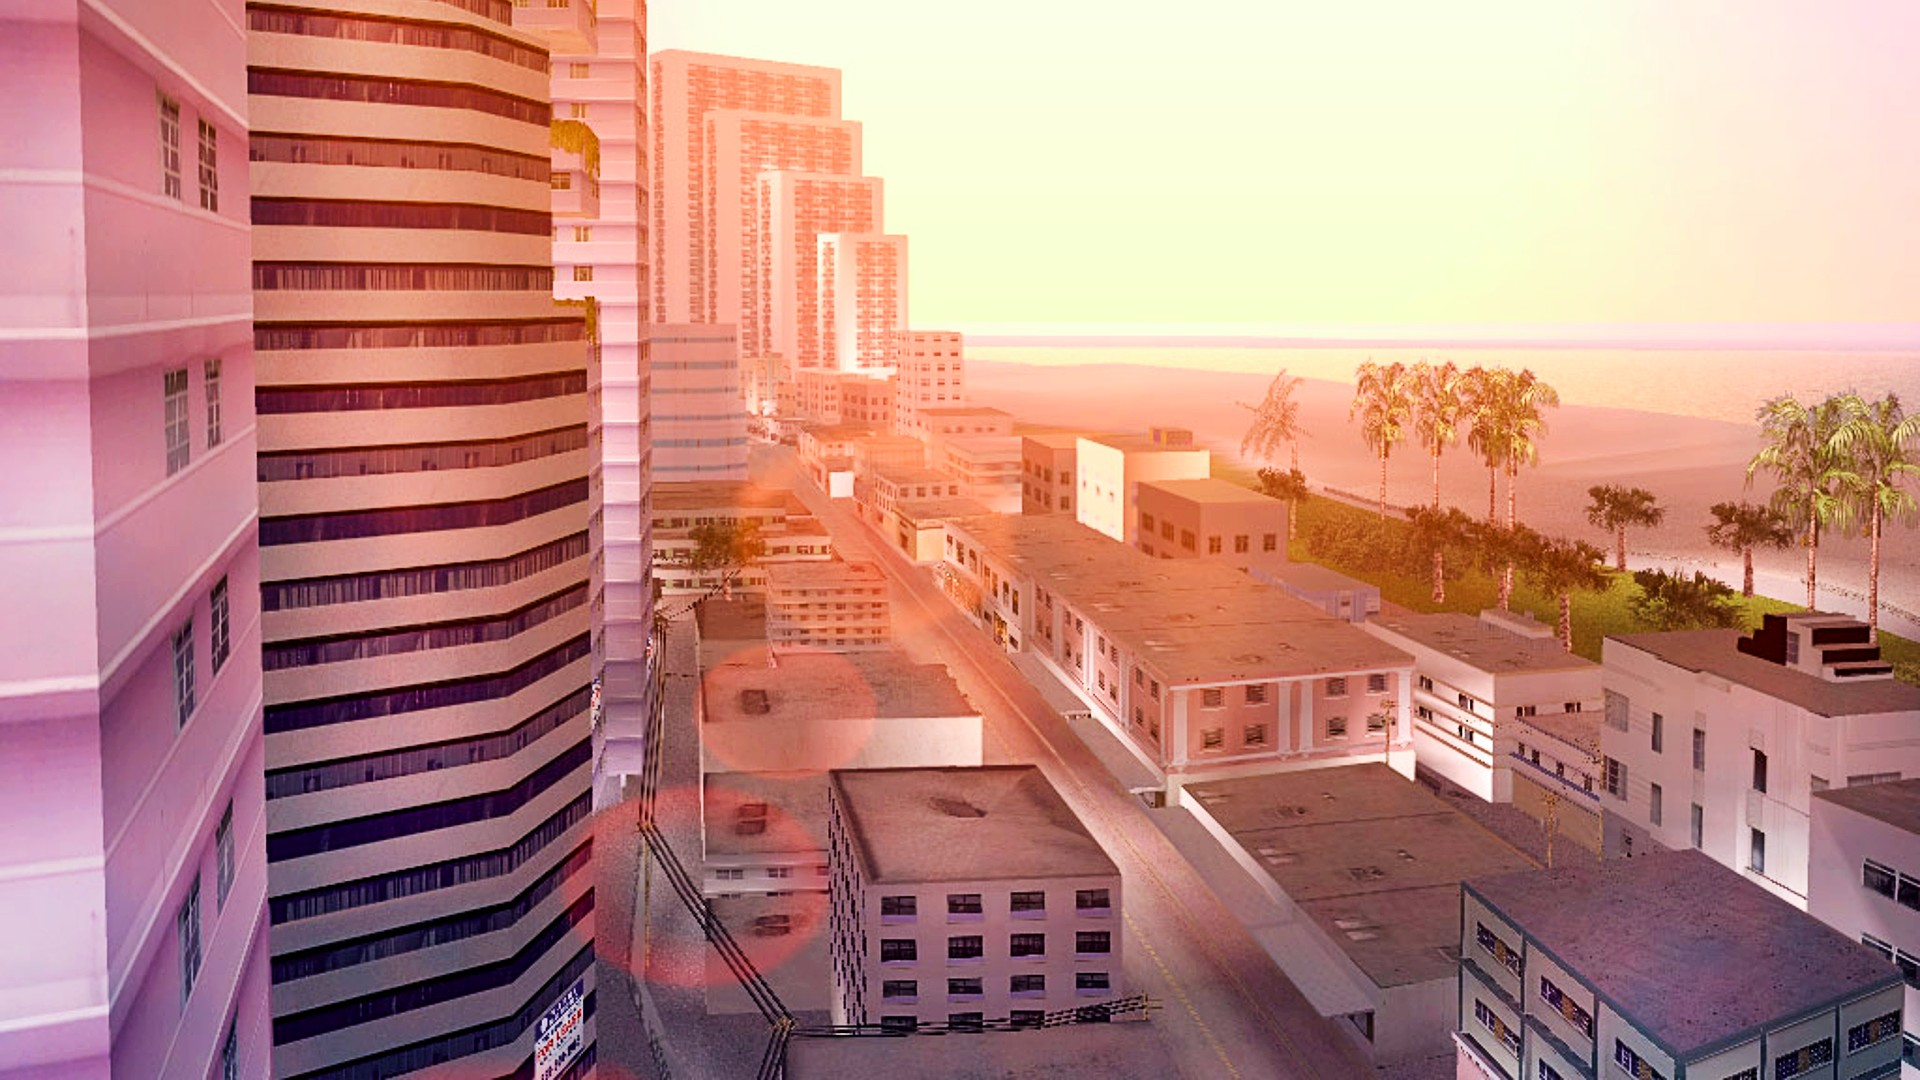 GTA mods site reportedly hit with takedown request from Take-Two